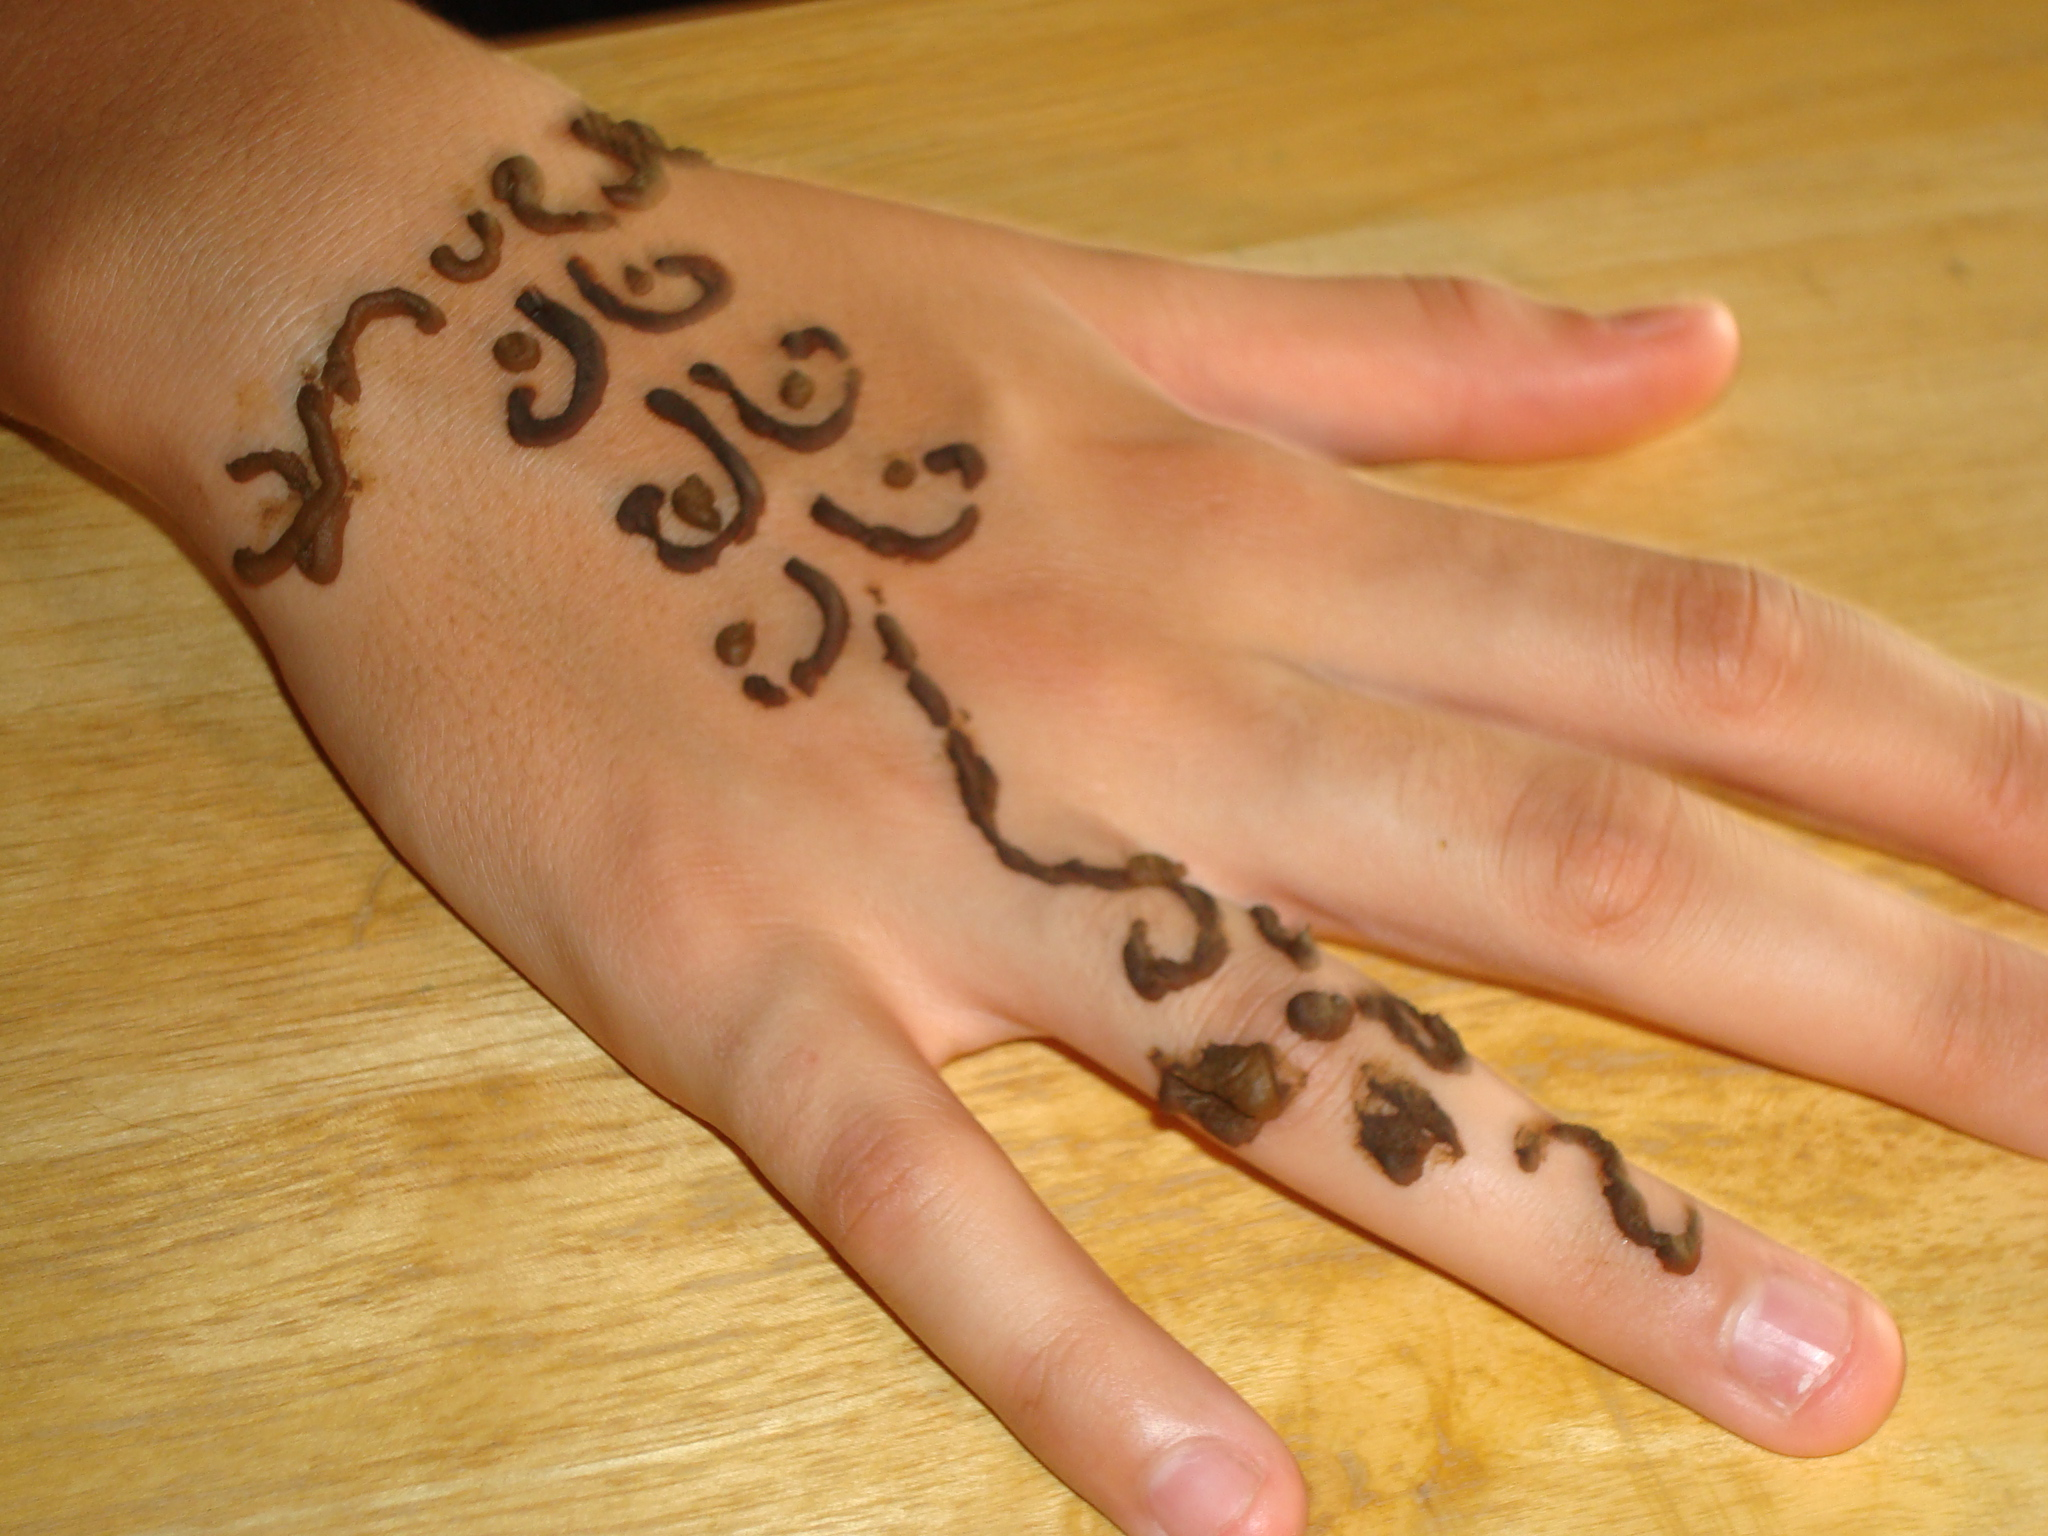 Body Painting Tattoo On The Hand With A Henna Tattoo Is Very